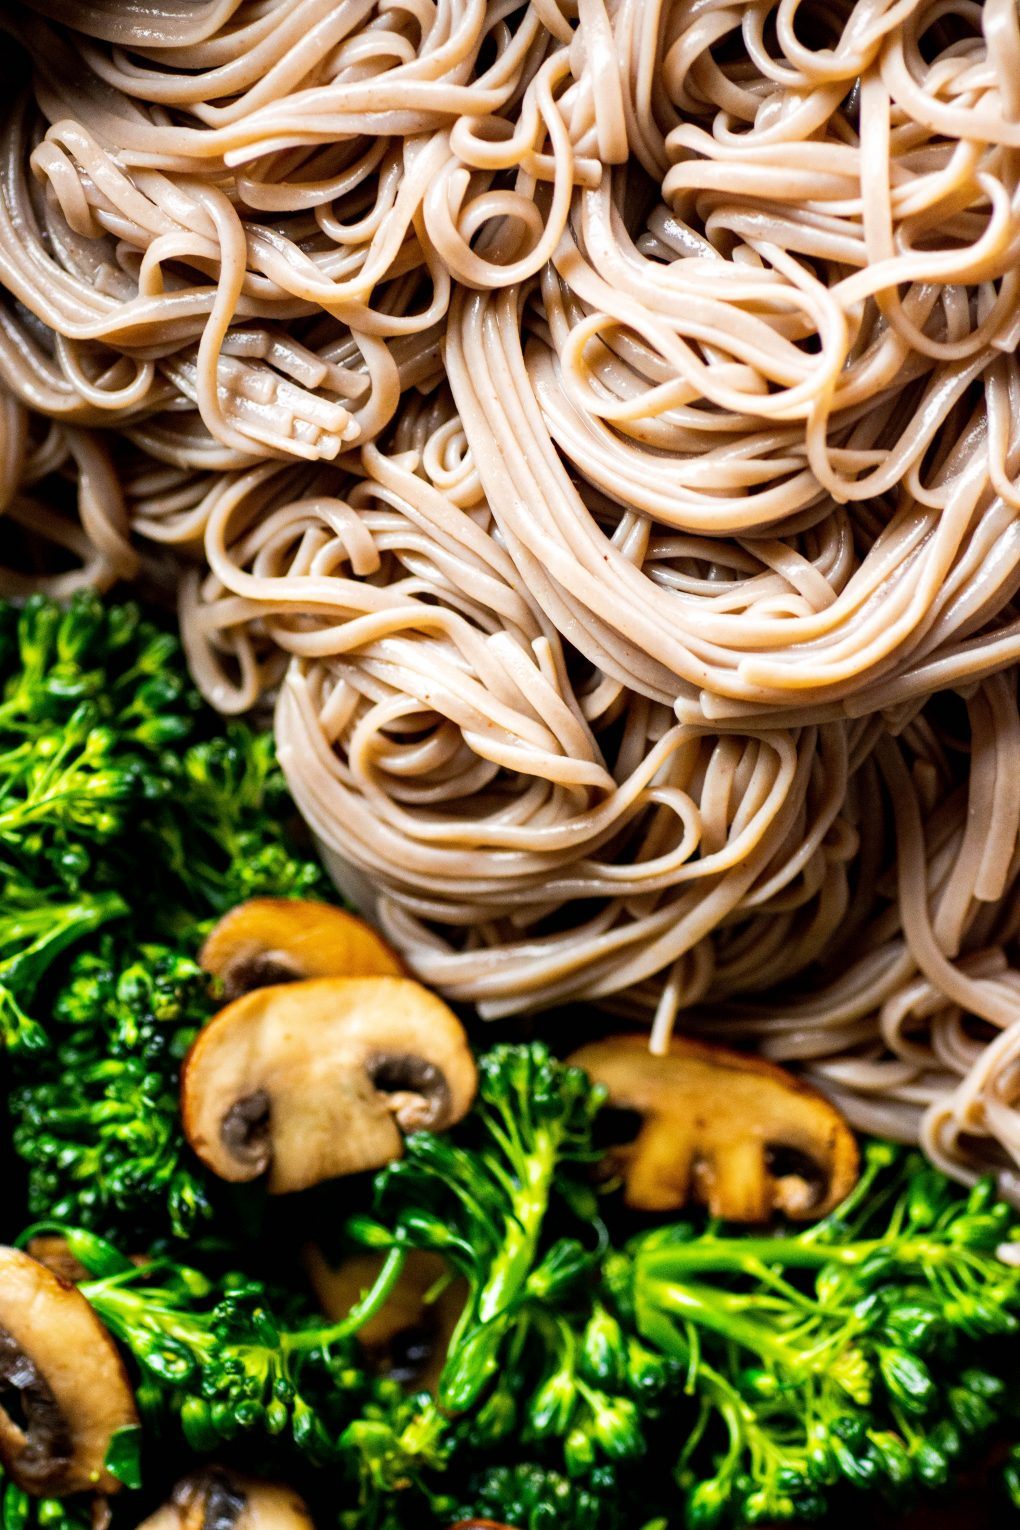 Super close up shot of tangled soba noodles in a skillet alongside caramelized mushrooms and bright green broccolini.